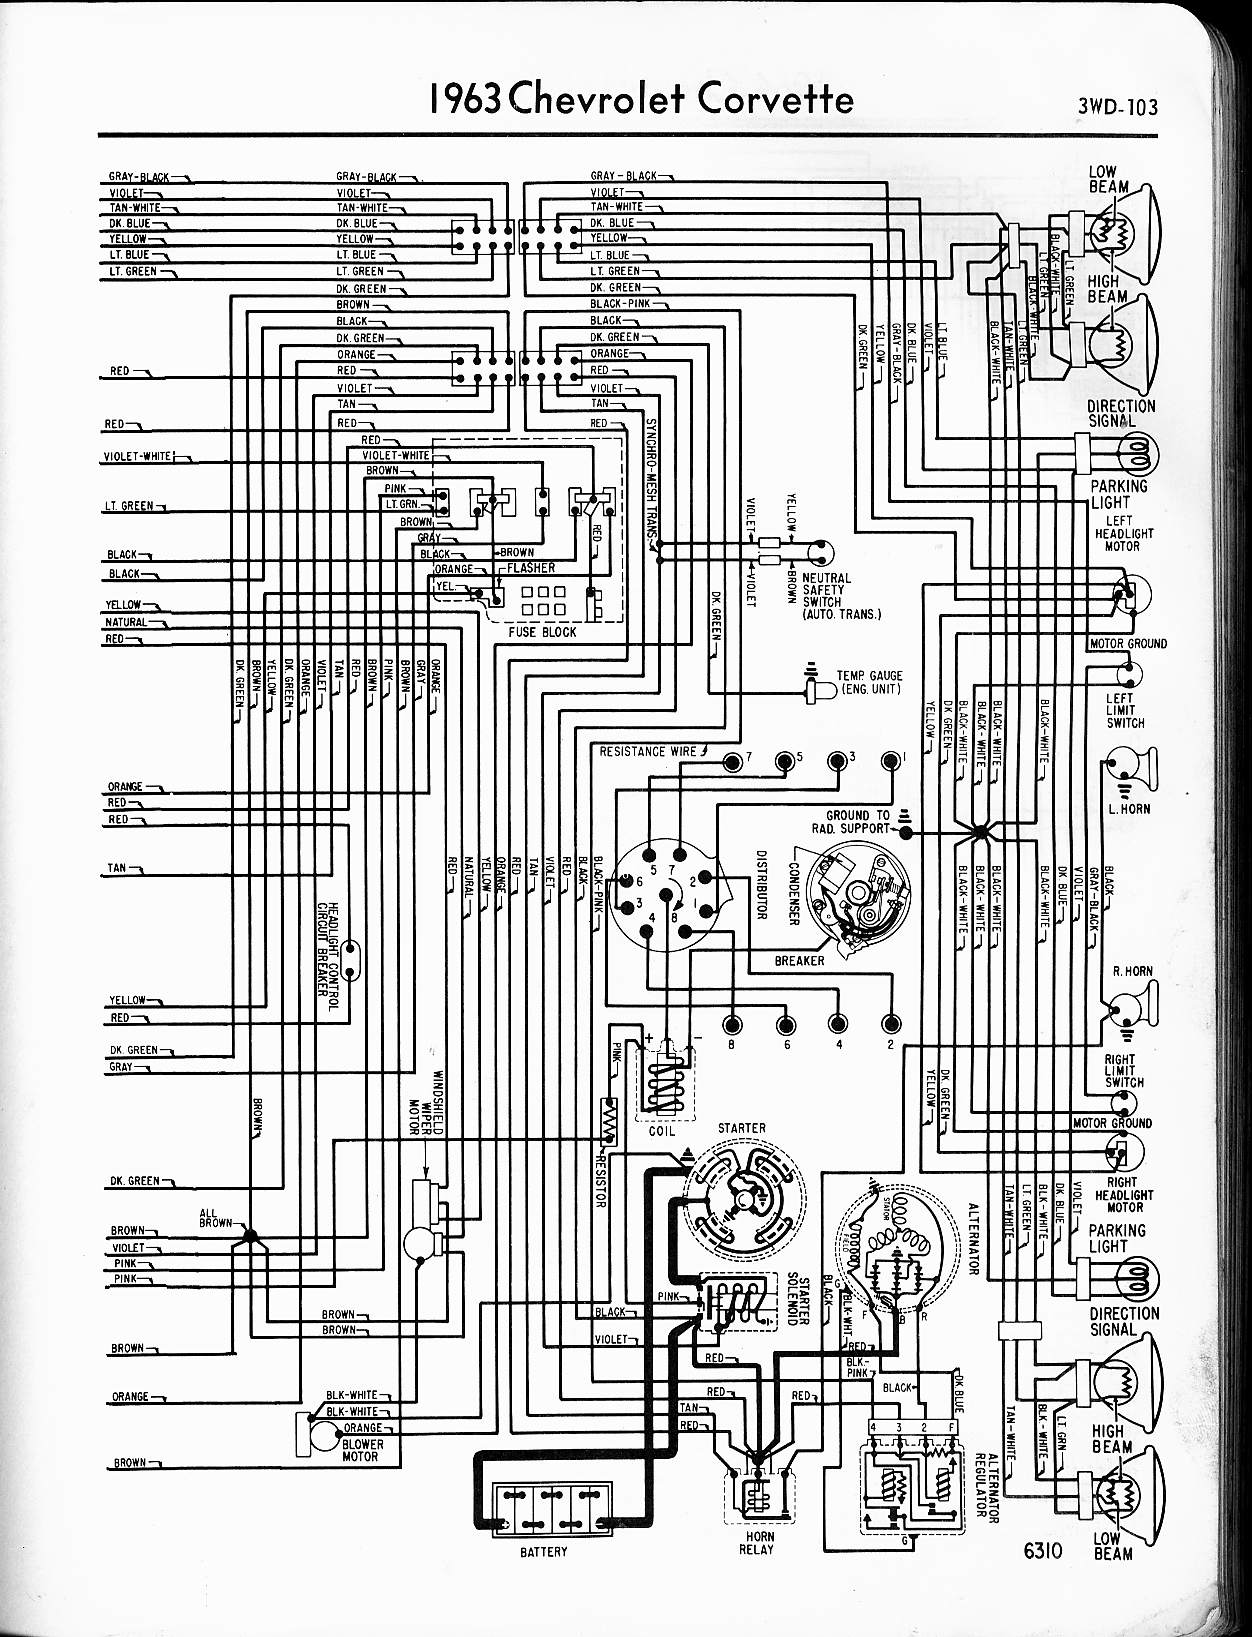 MWireChev63_3WD 103 57 65 chevy wiring diagrams 66 Corvette at webbmarketing.co